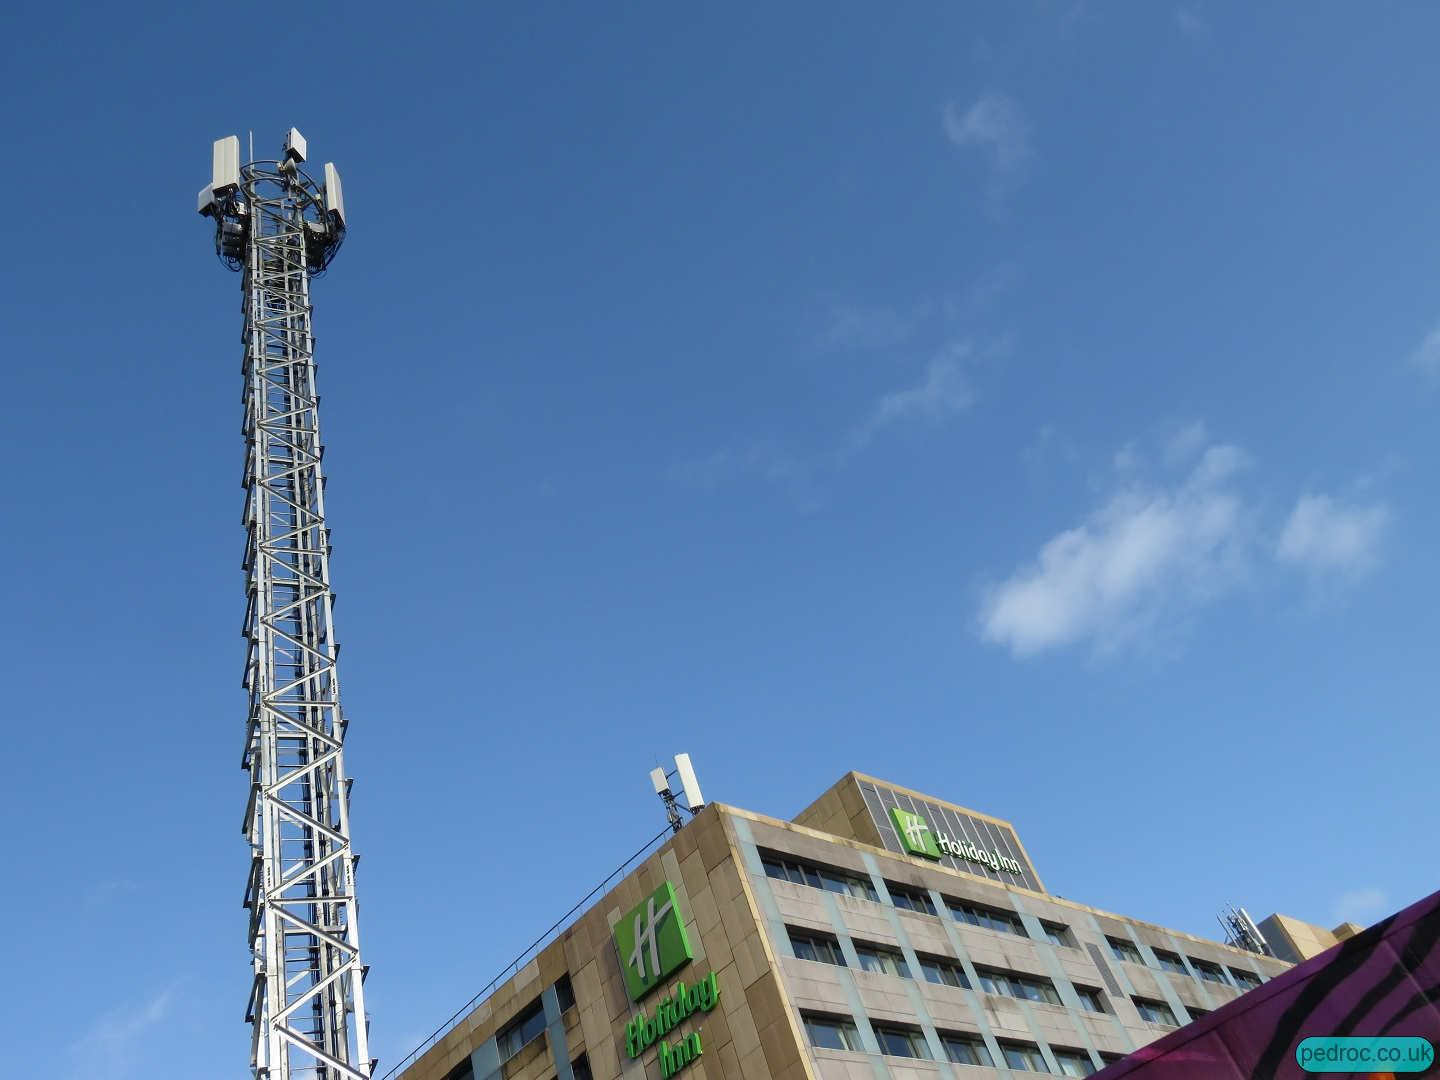 Separate 5G masts for Vodafone and O2 at Holiday Inn